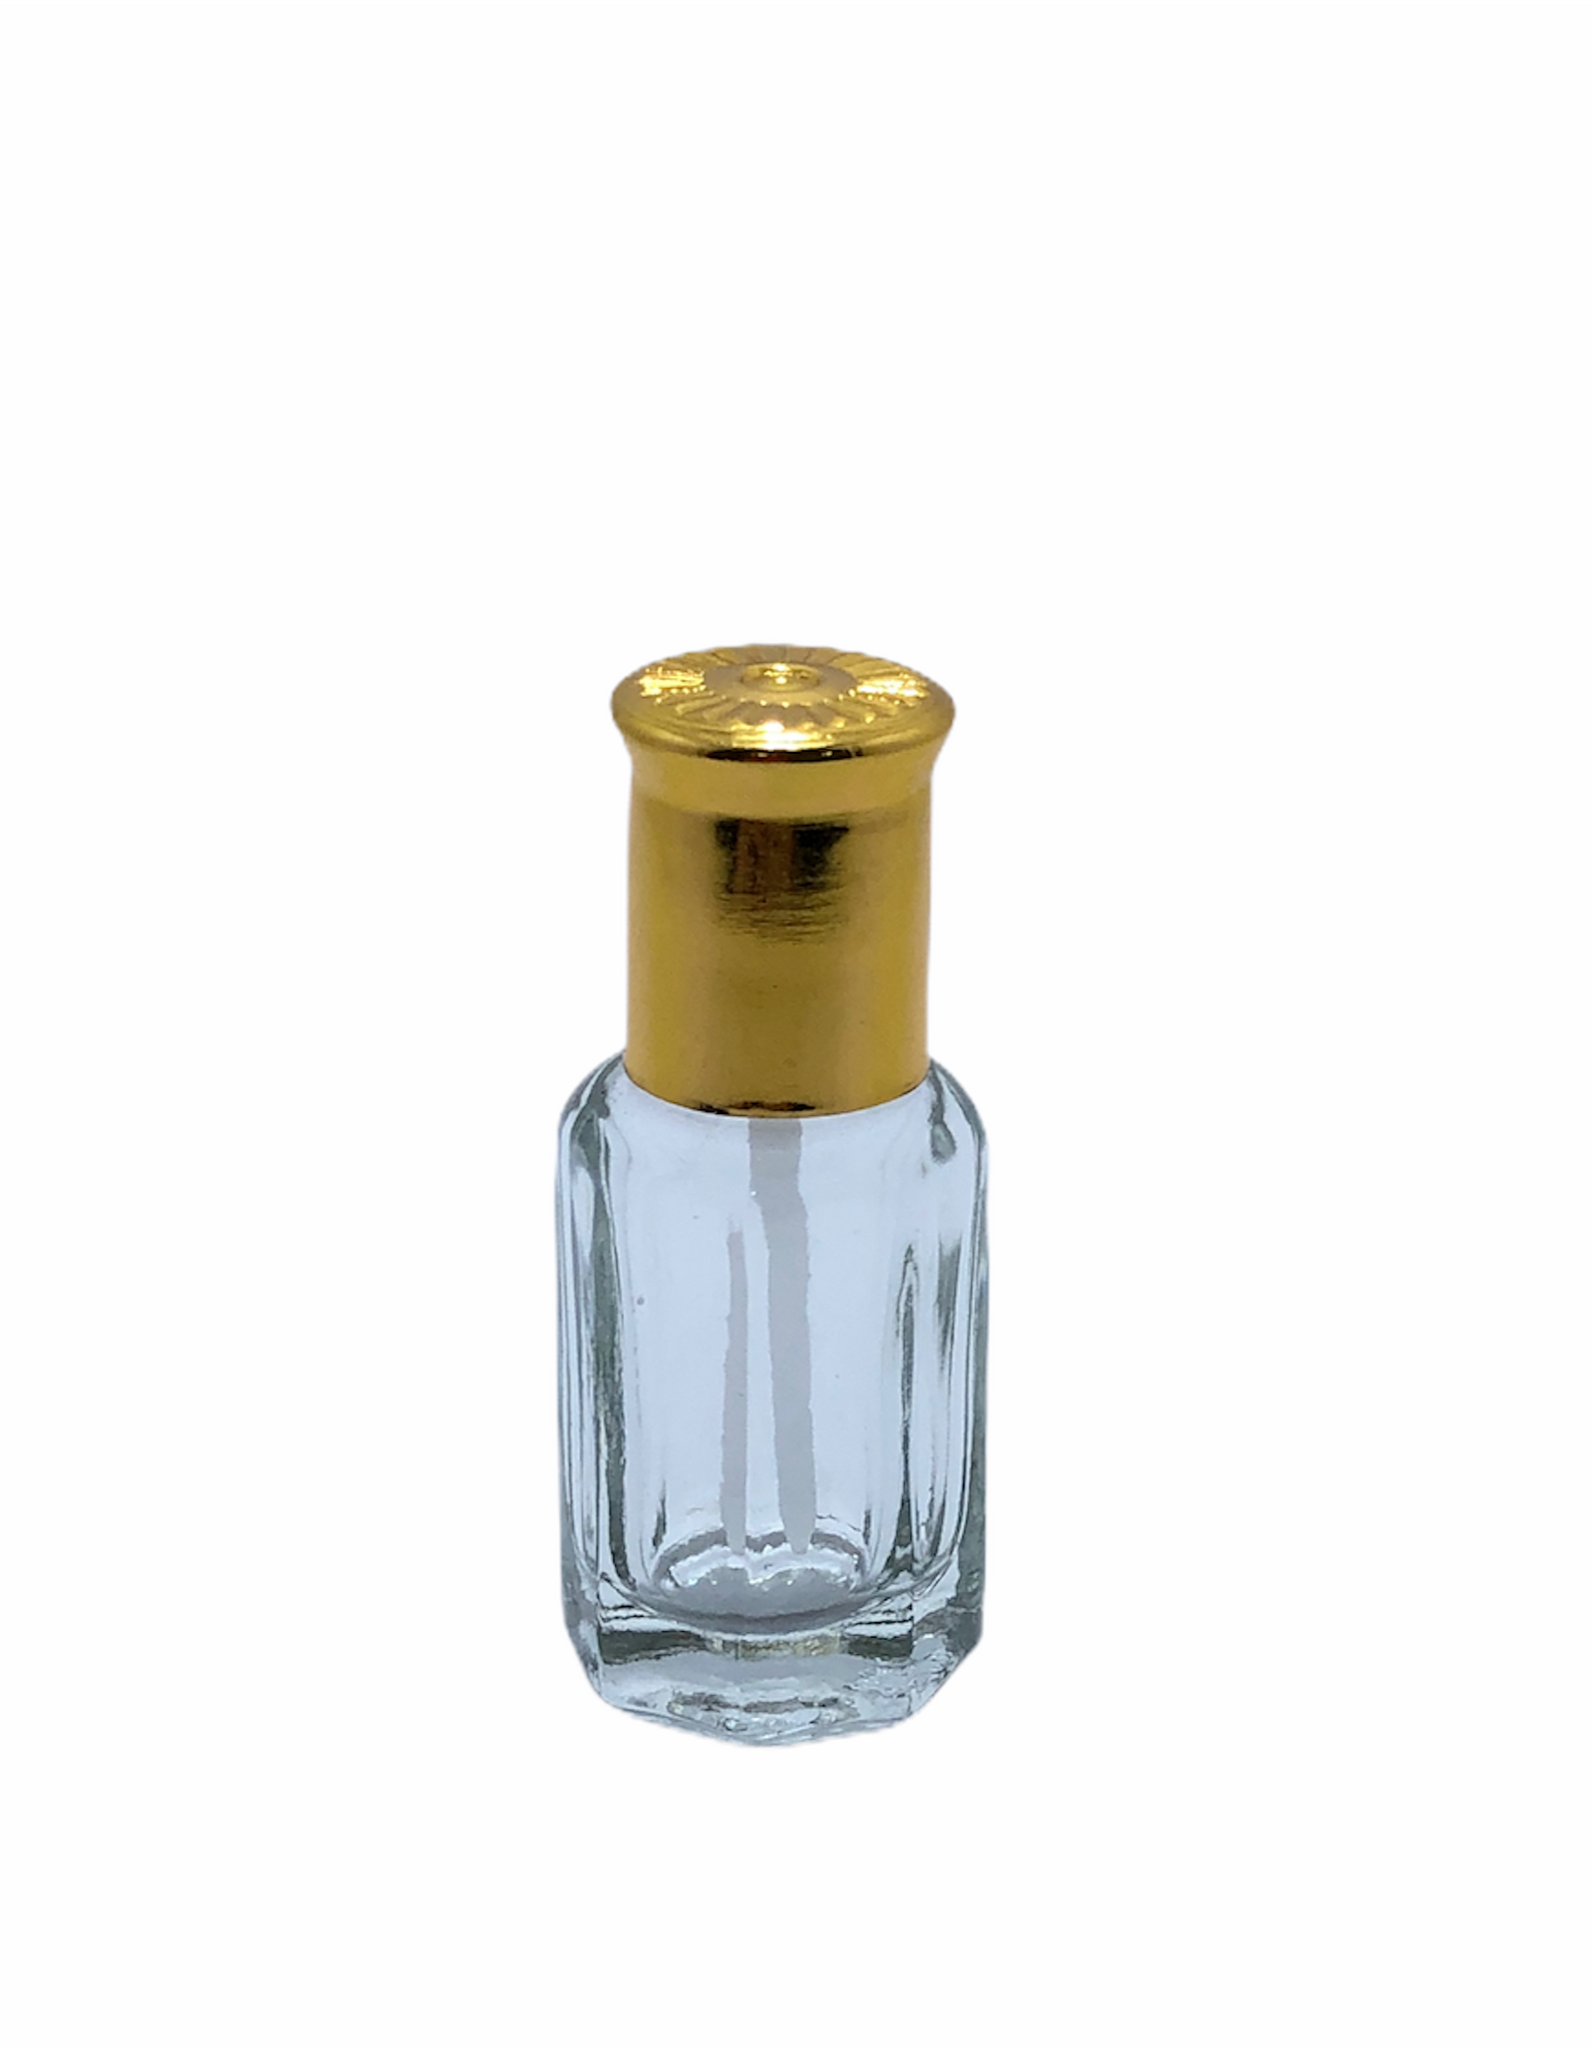 6ML Perfume Oil Bottle (1/2 Tola)